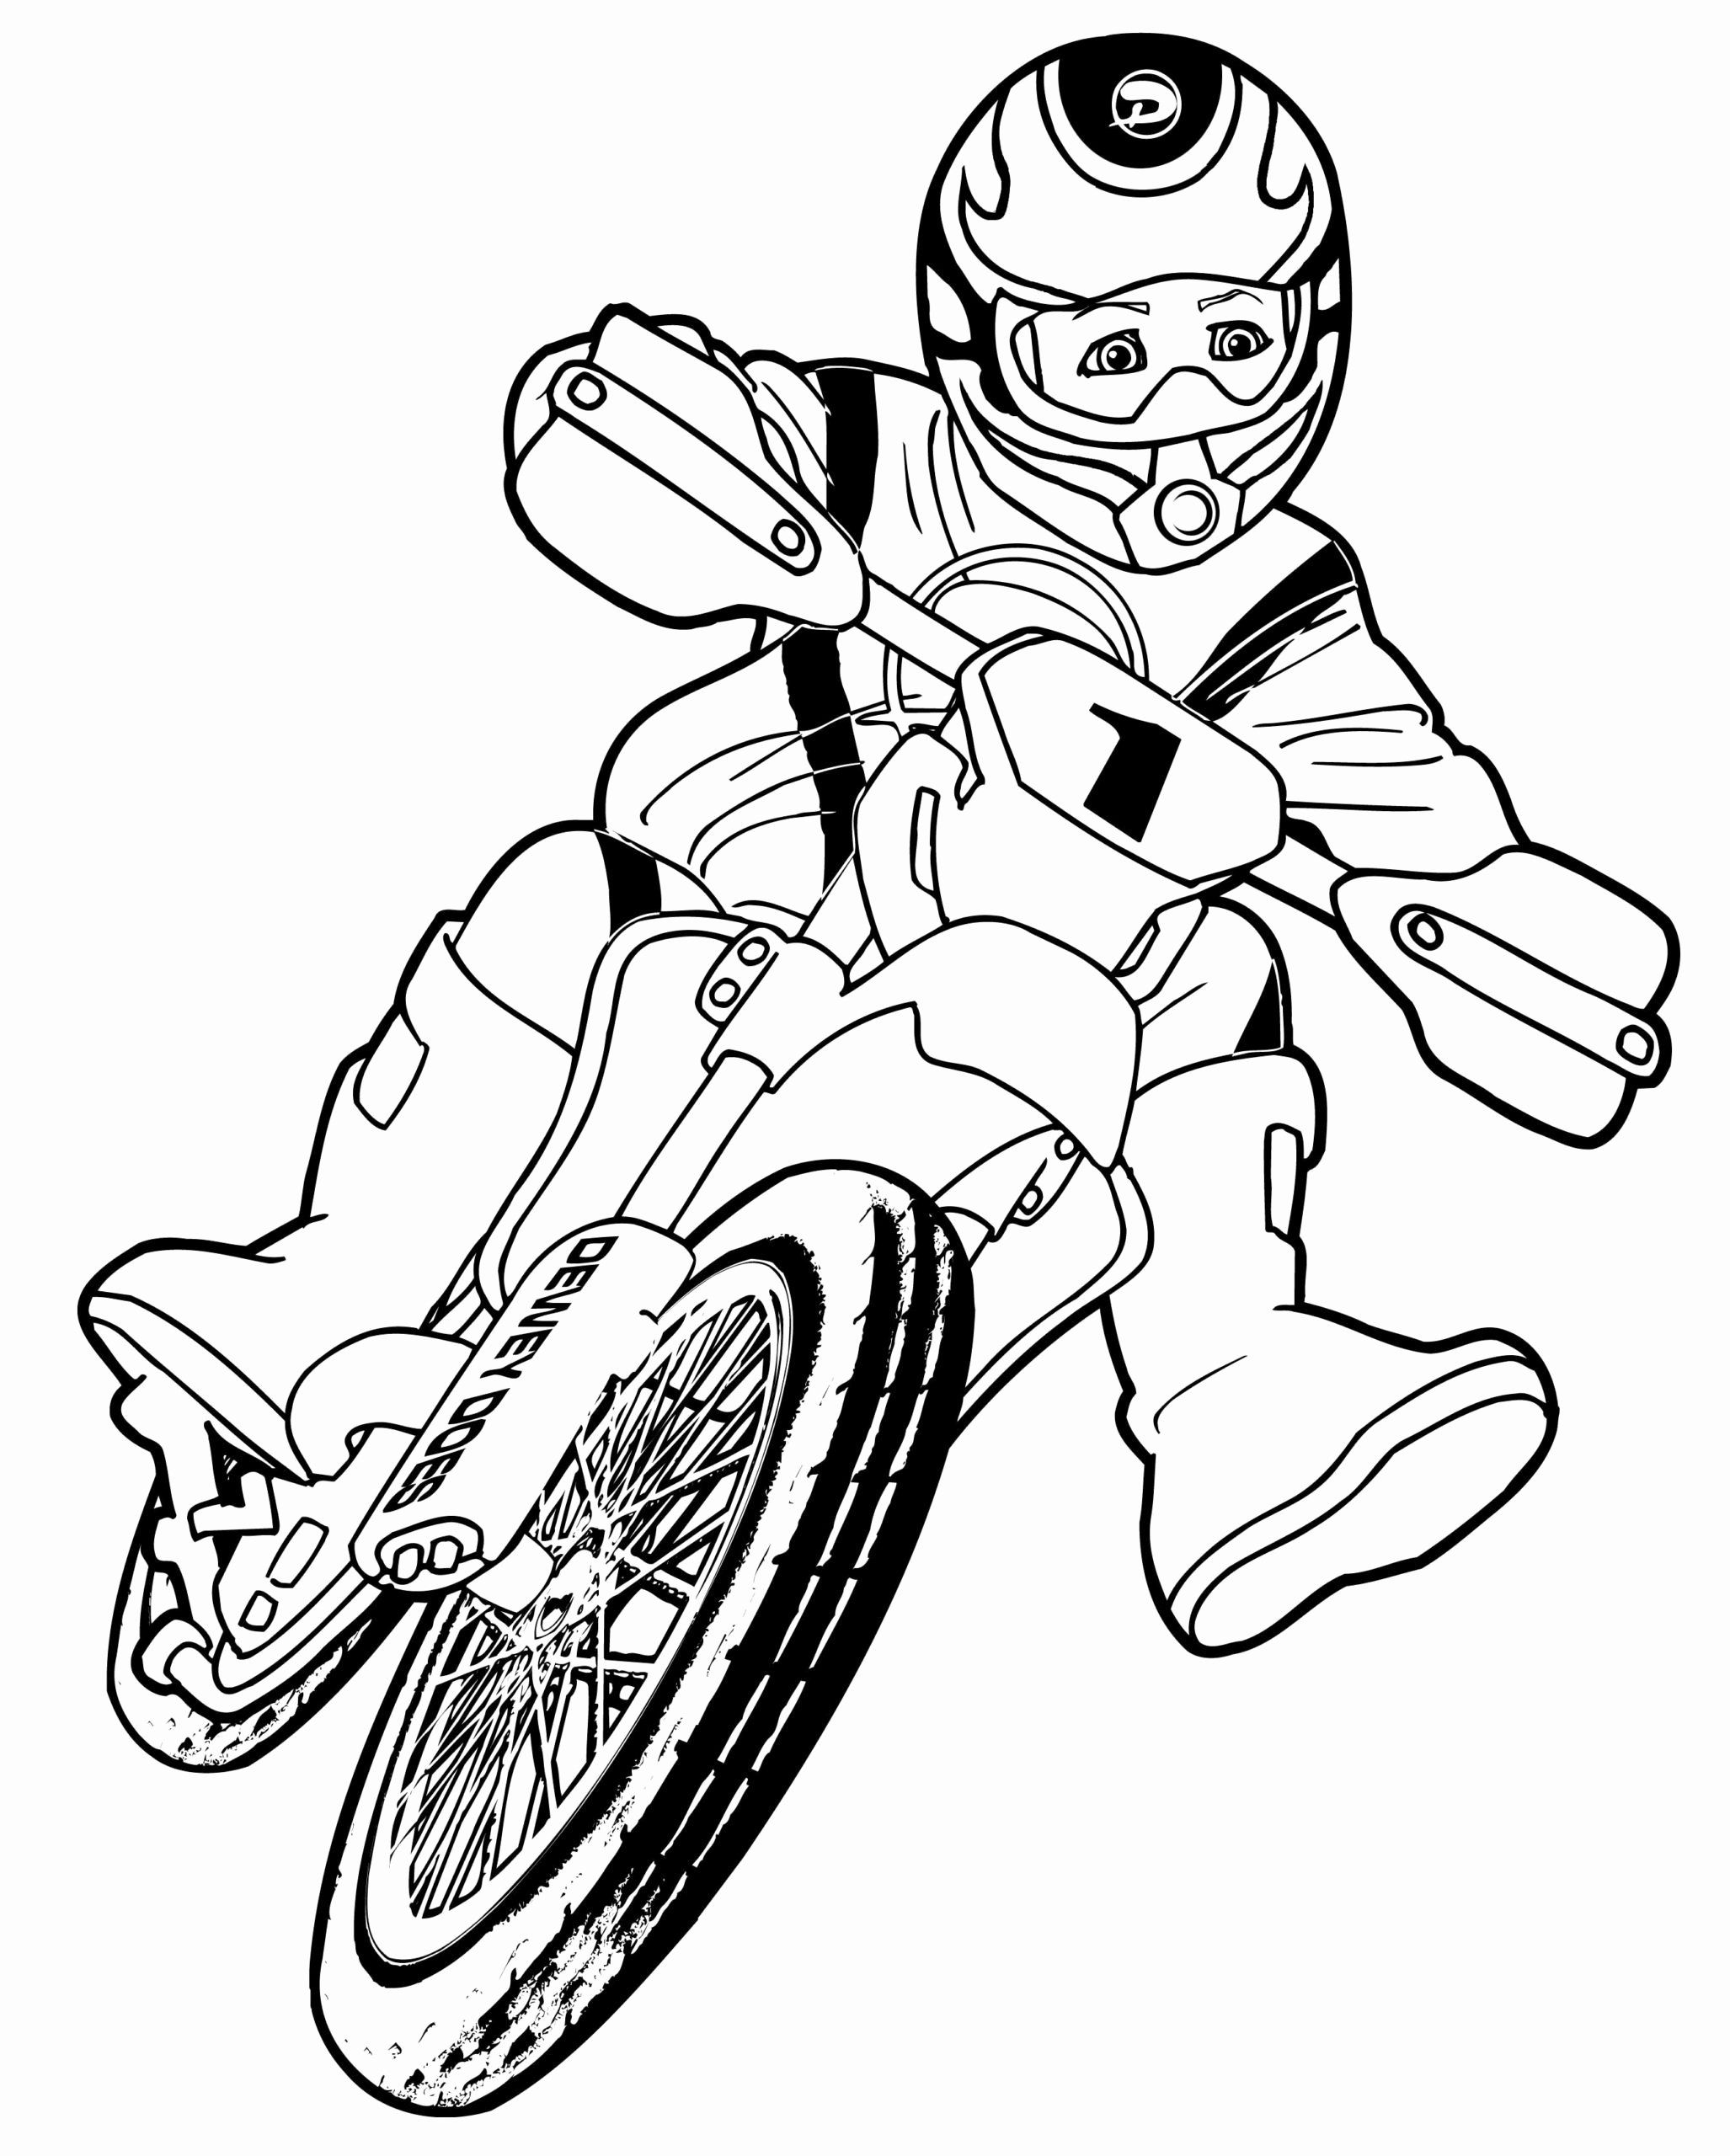 Sport Coloring Pages Pdf Awesome Coloring Pages Dirt Bike Coloring Motorcycle Motorbike In 2020 Race Car Coloring Pages Cars Coloring Pages Coloring Pages For Boys